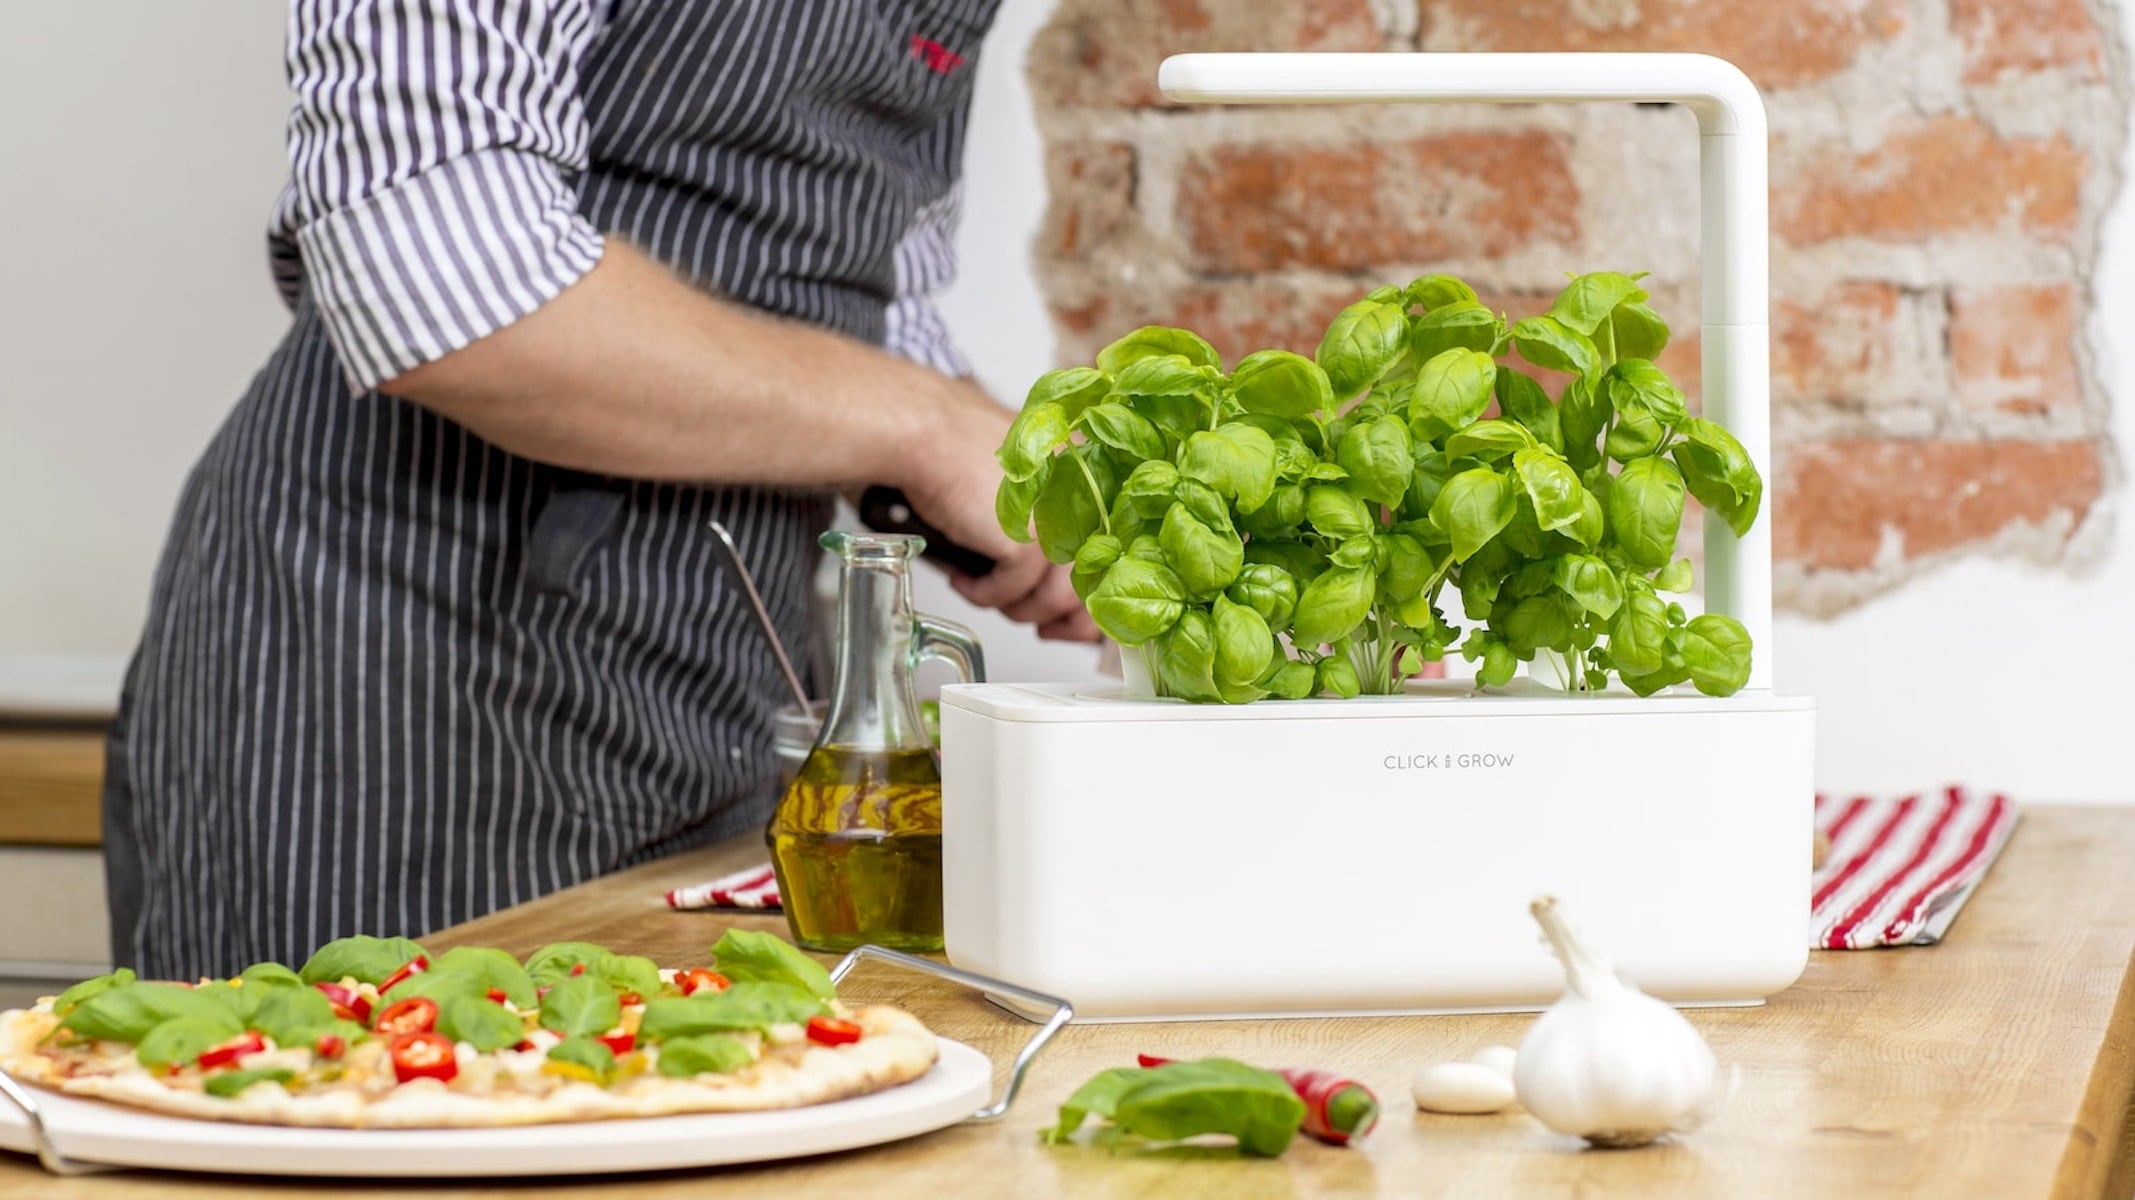 Top 5 smart garden kits to grow your greens at home